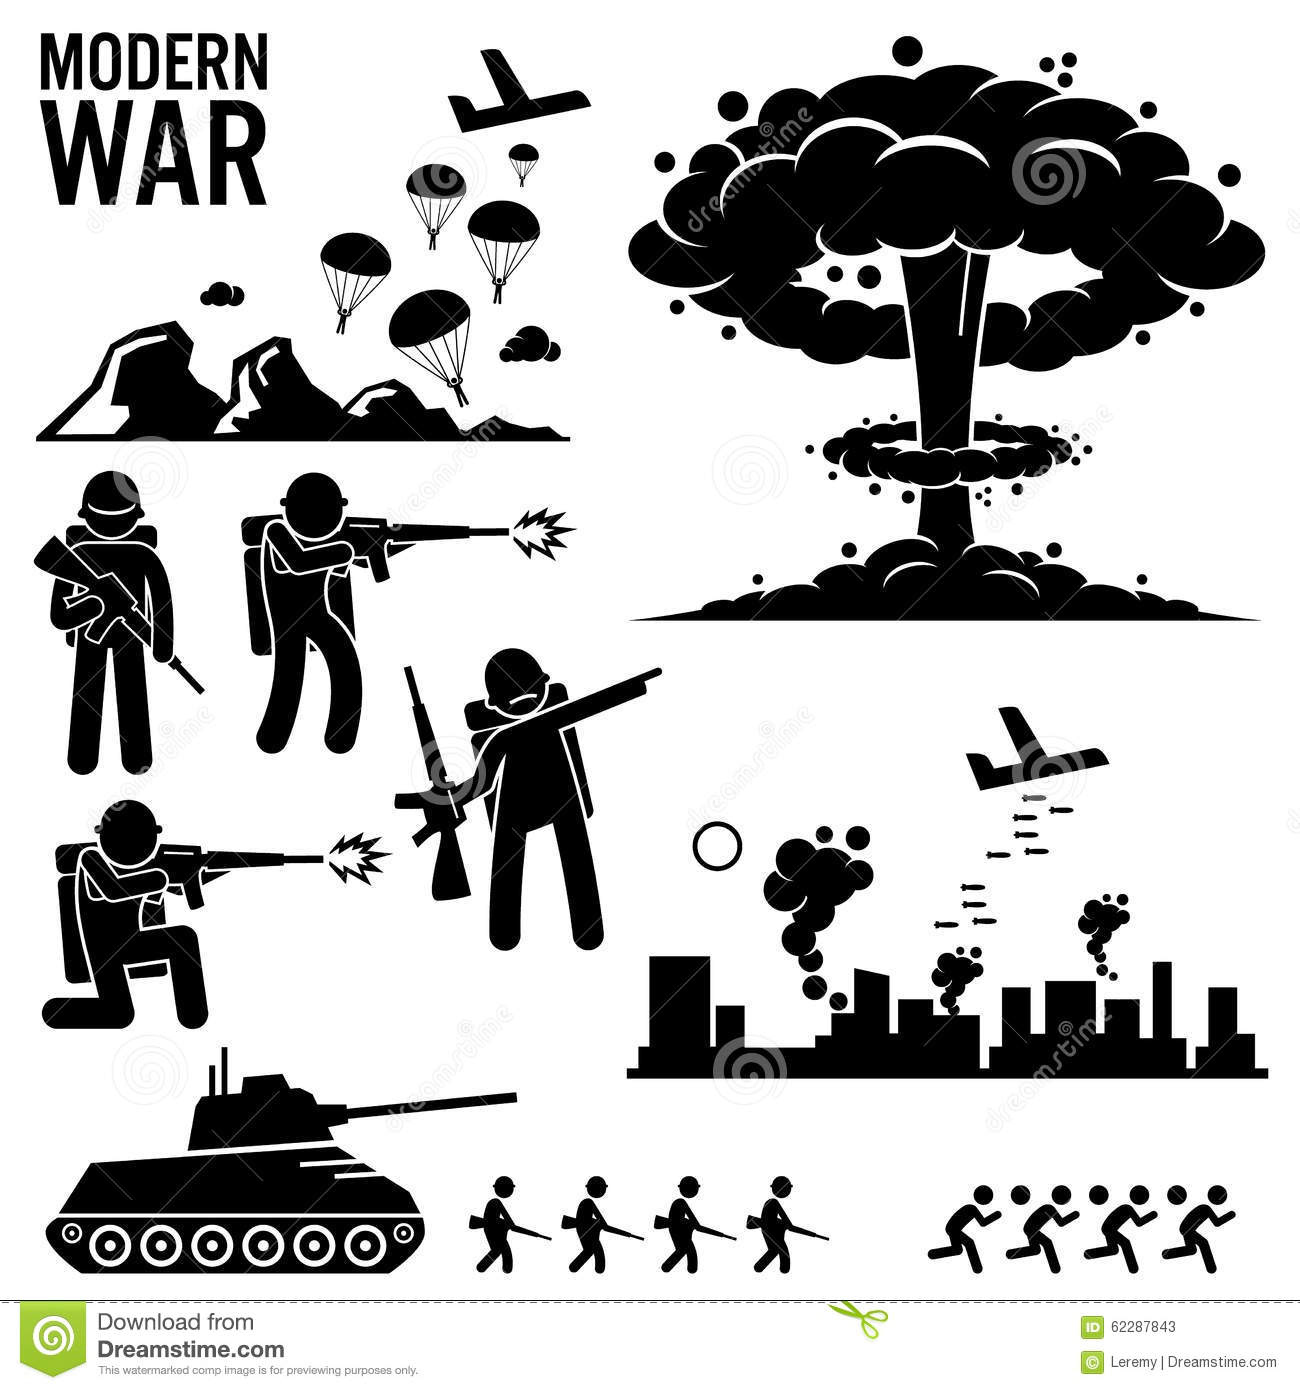 War Modern Warfare Nuclear Bomb Soldier Tank Attack Clipart Stock.